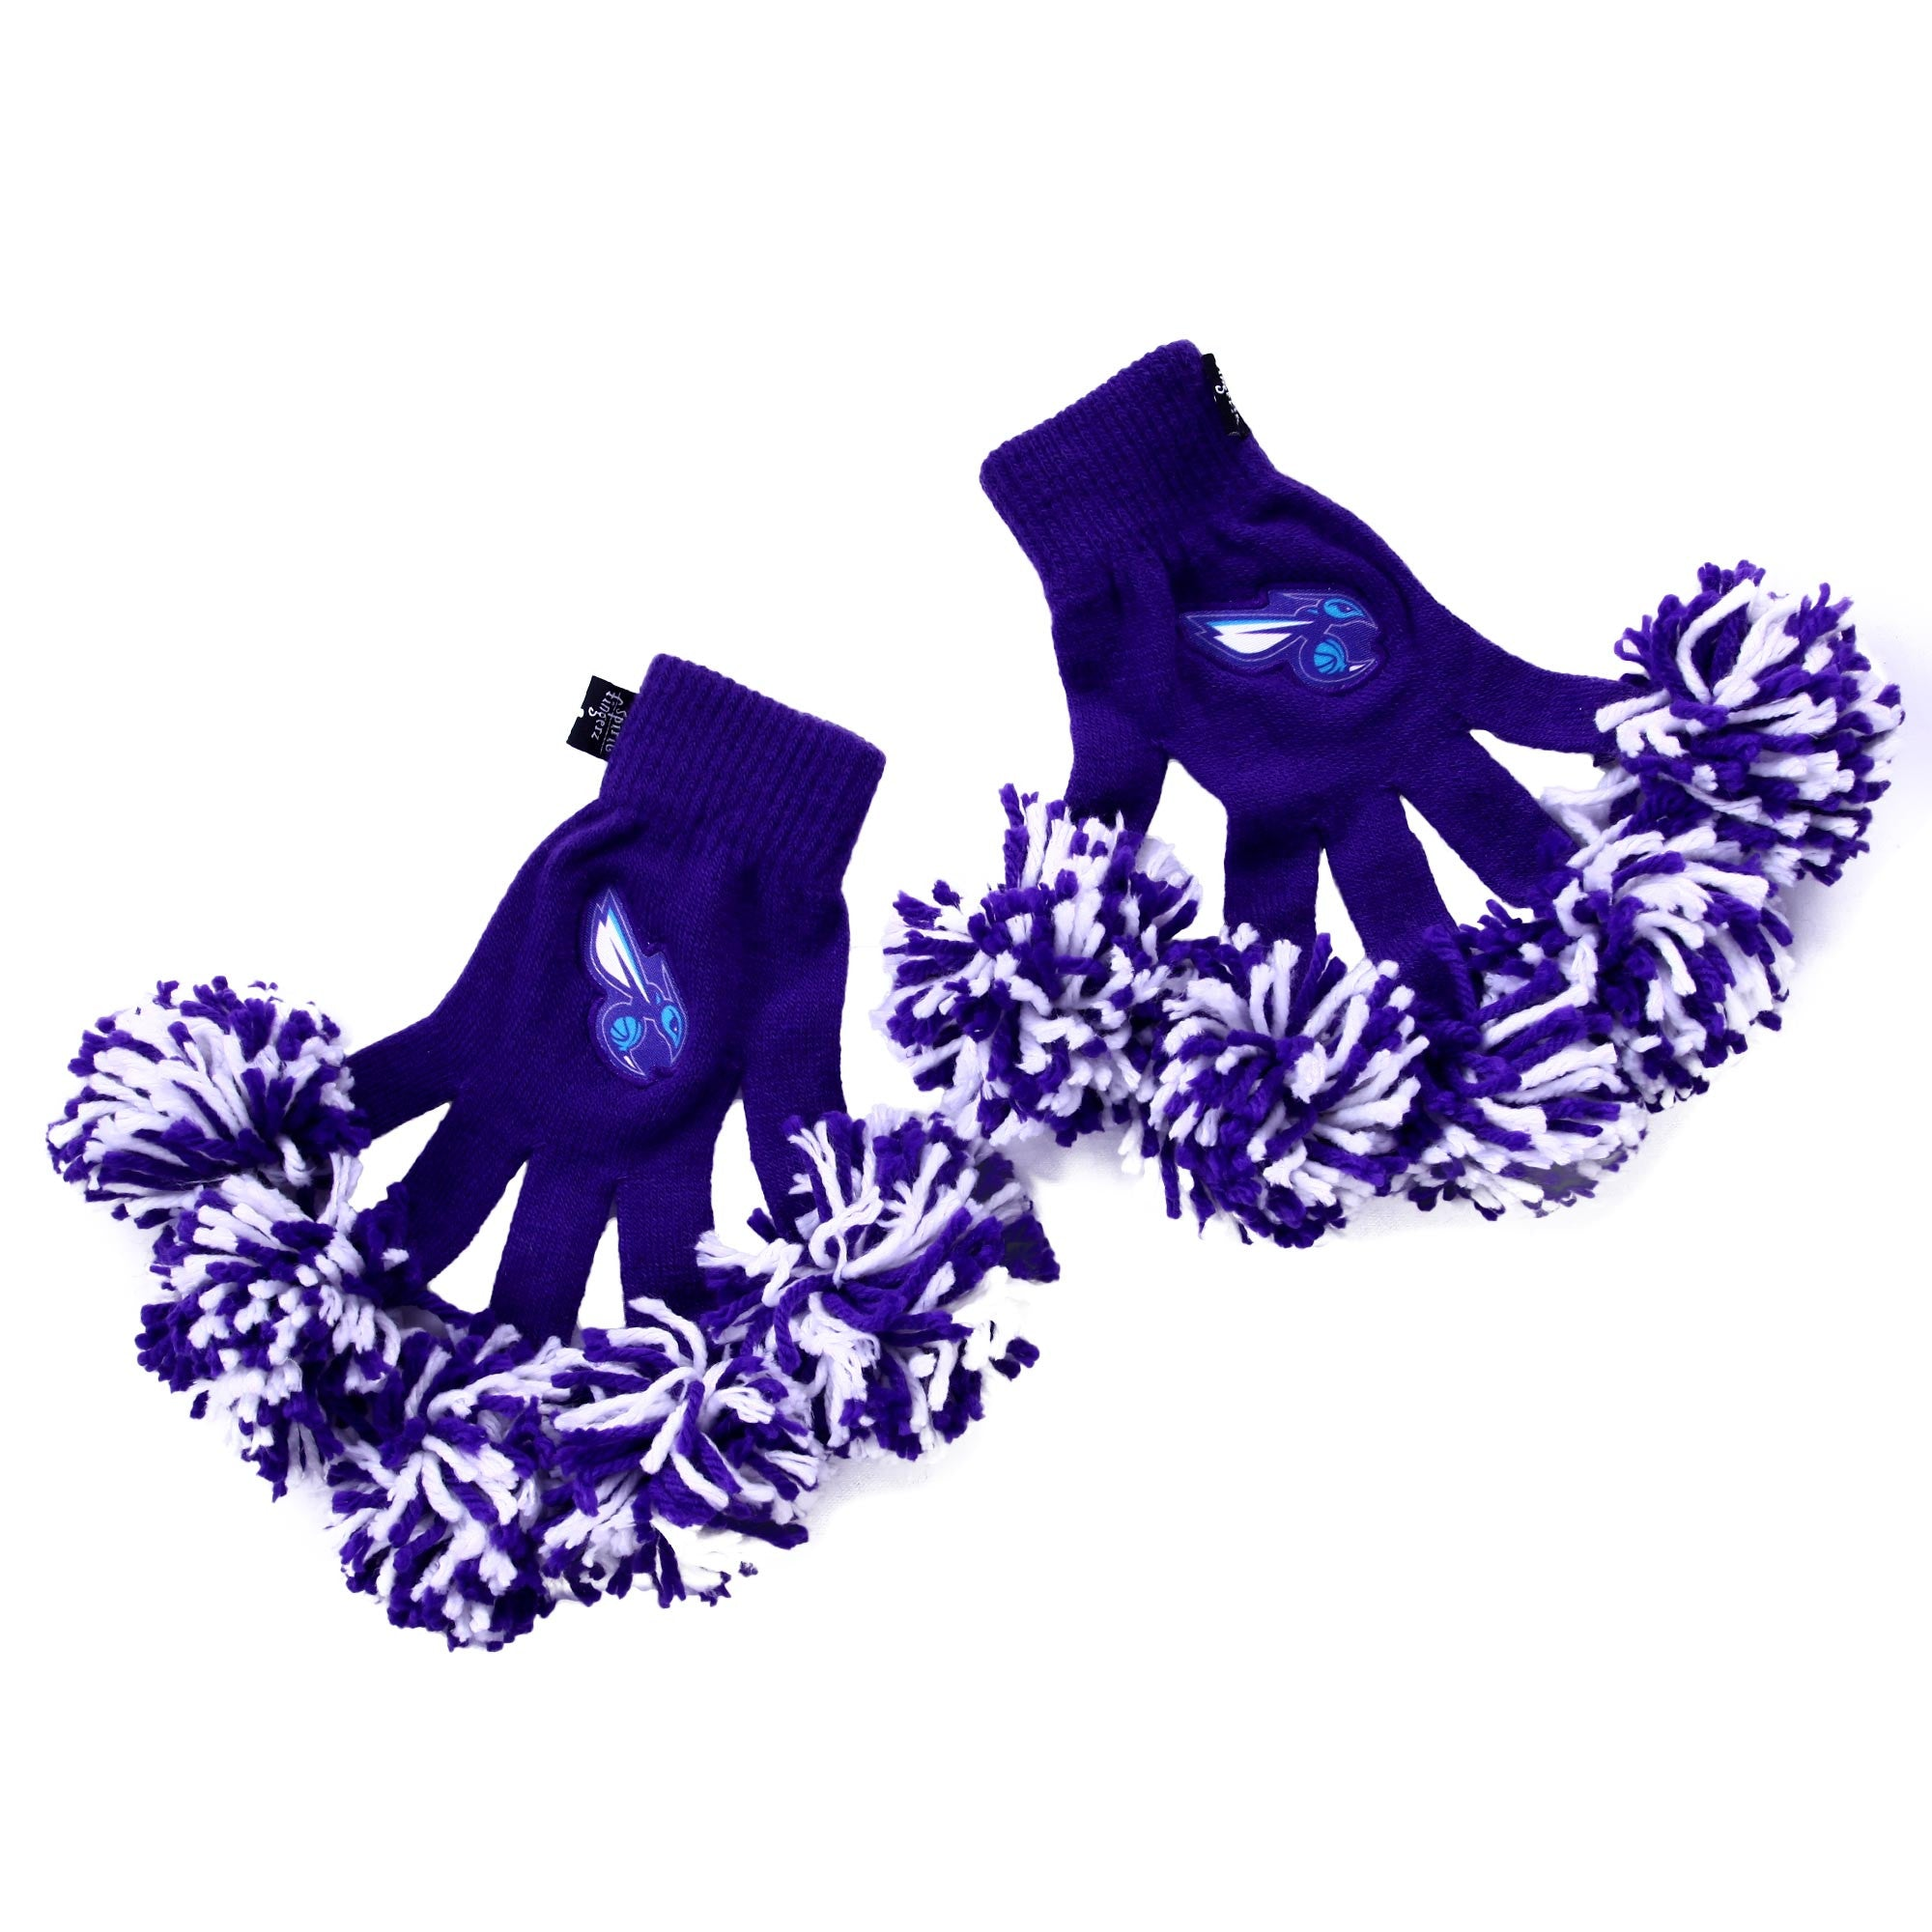 Charlotte Hornets NBA Spirit Fingerz Cheerleading Pom-Pom Gloves